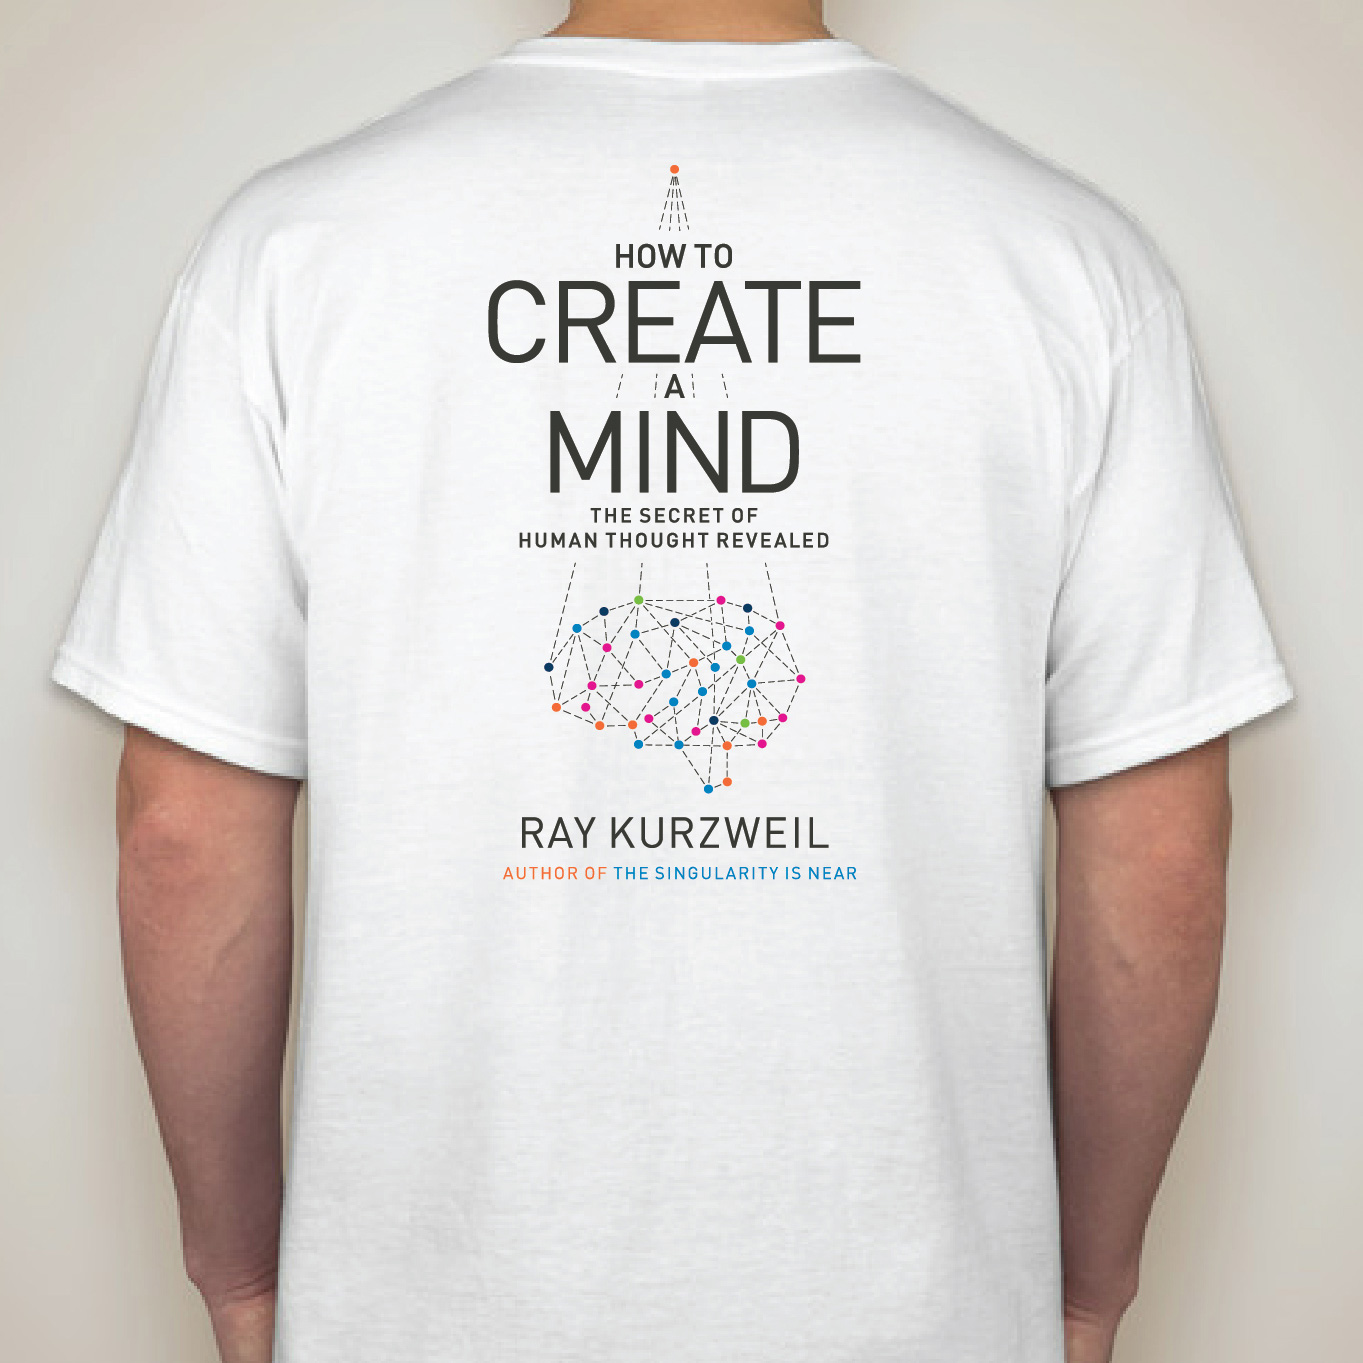 ' ' from the web at 'http://howtocreateamind.com/images/tshirt-back.jpg'